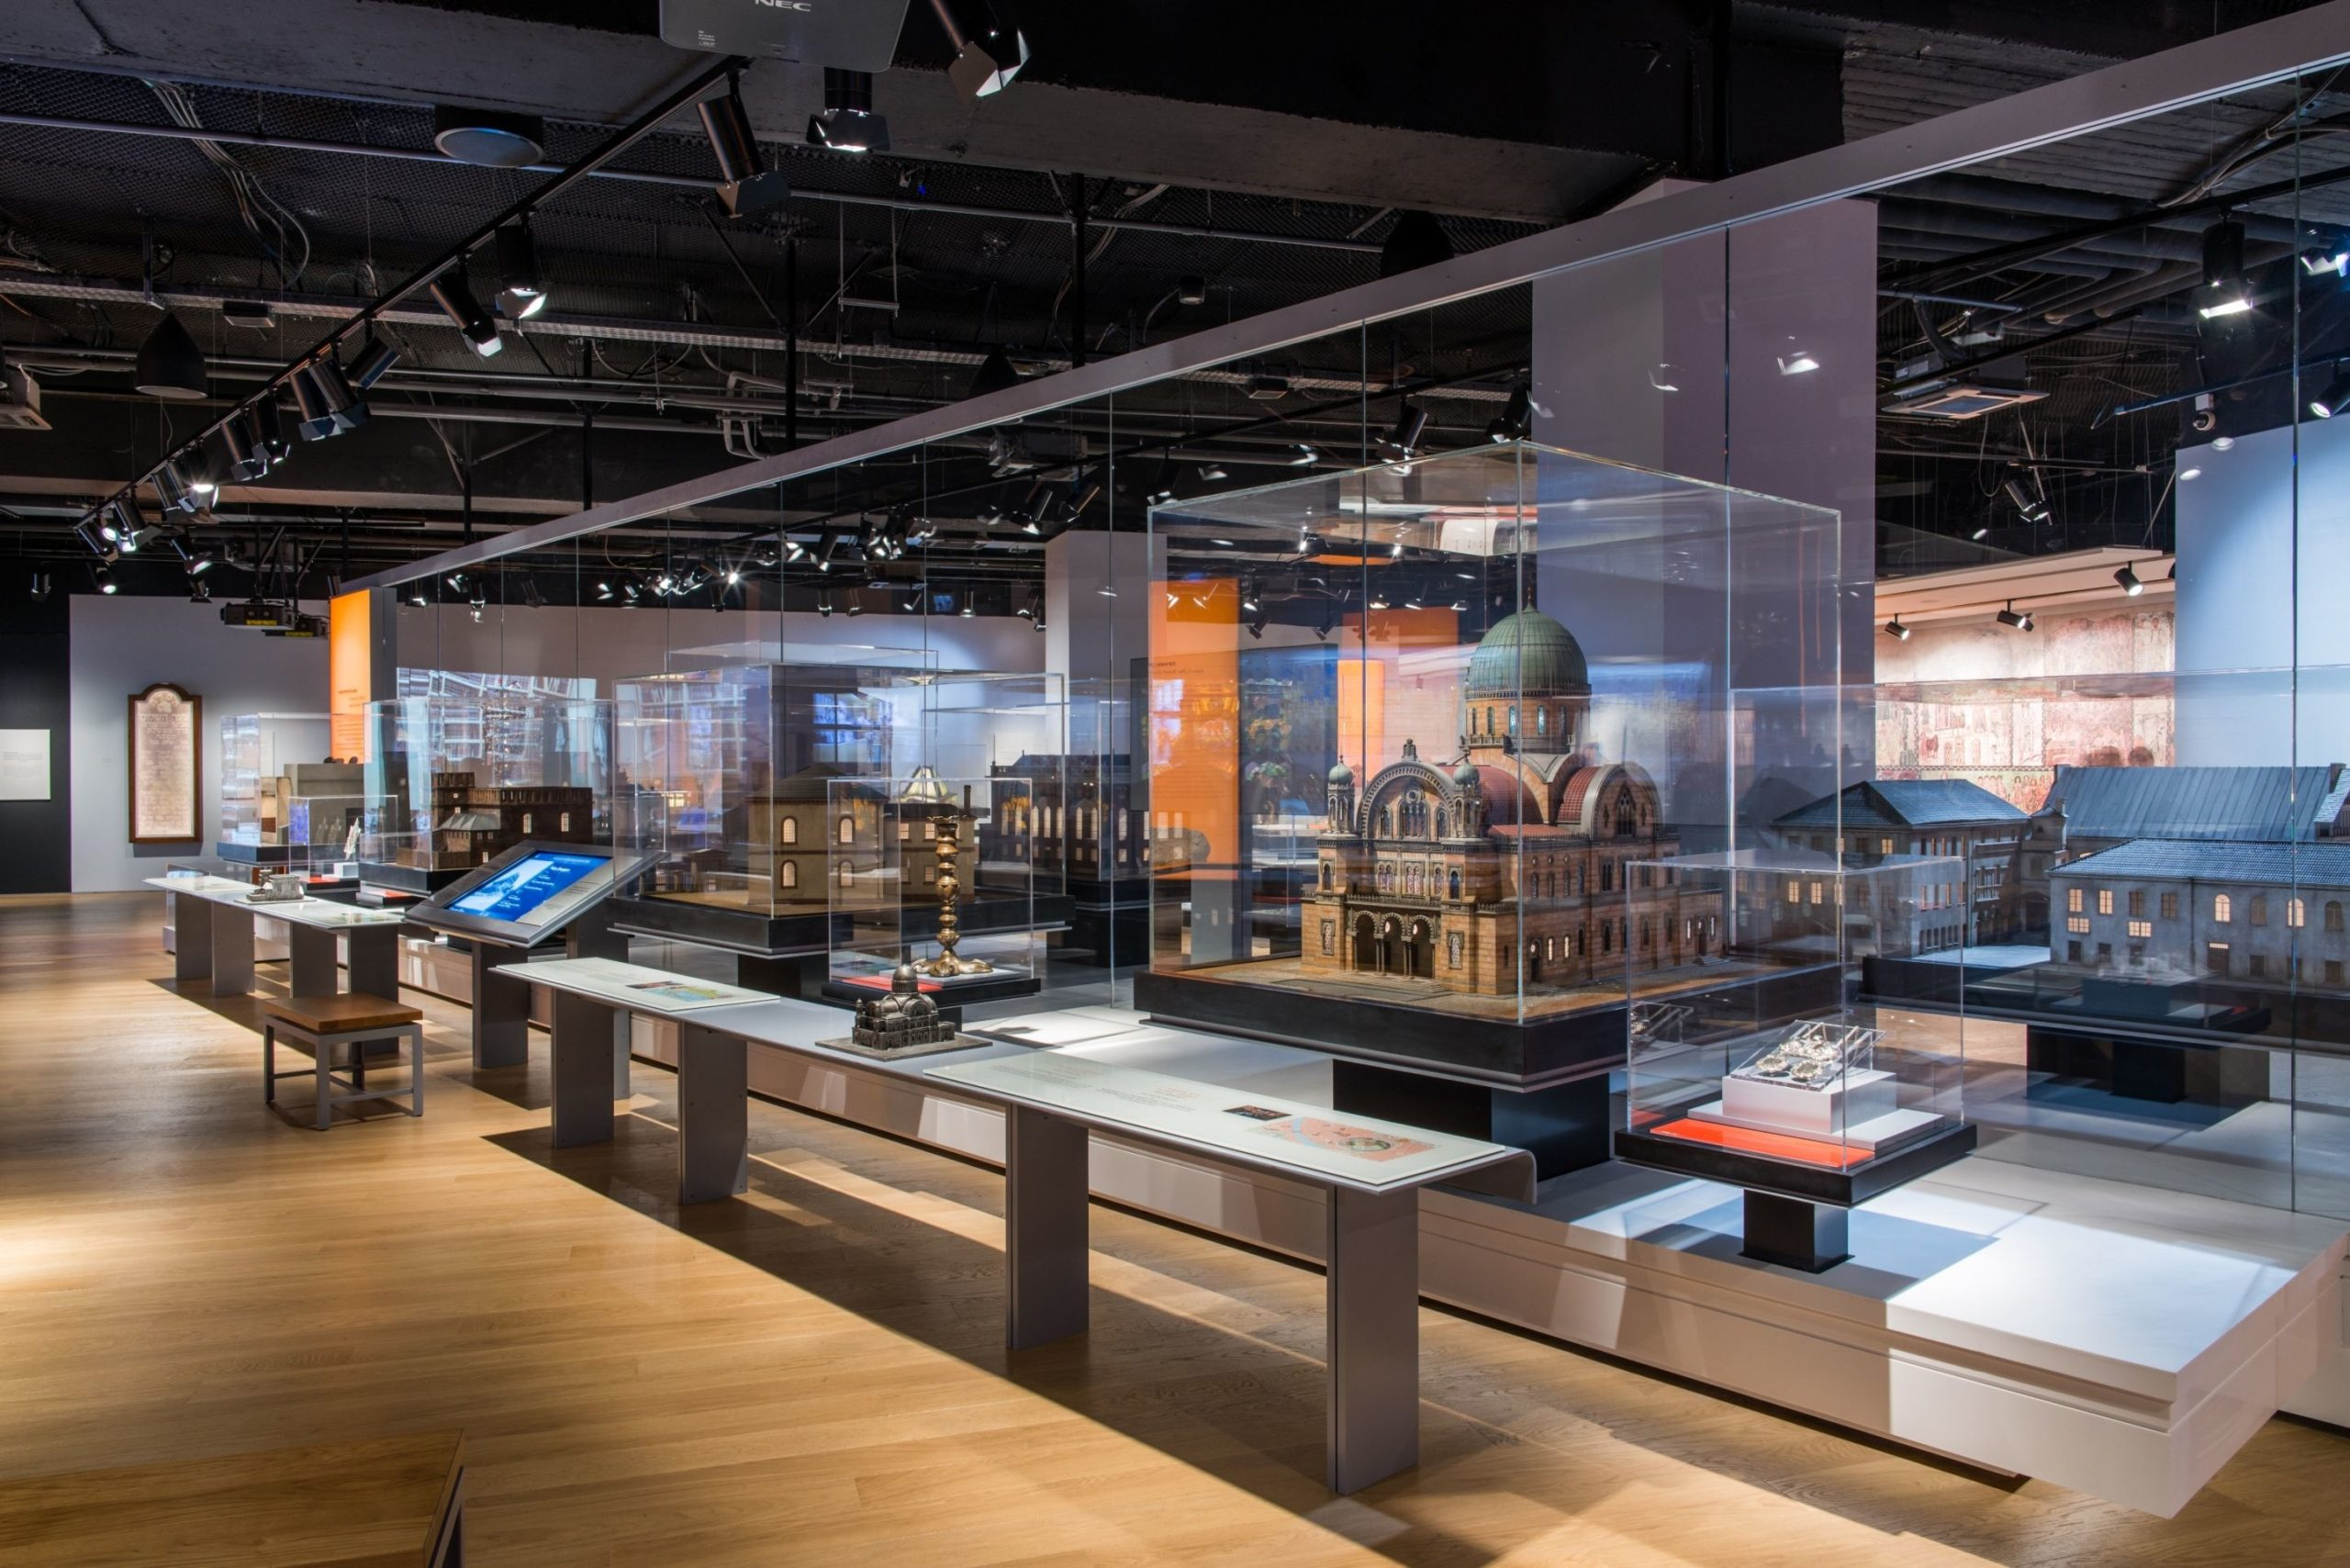 Israel Ministry of Tourism and Museum of the Jewish People to host grand reopening of core exhibition